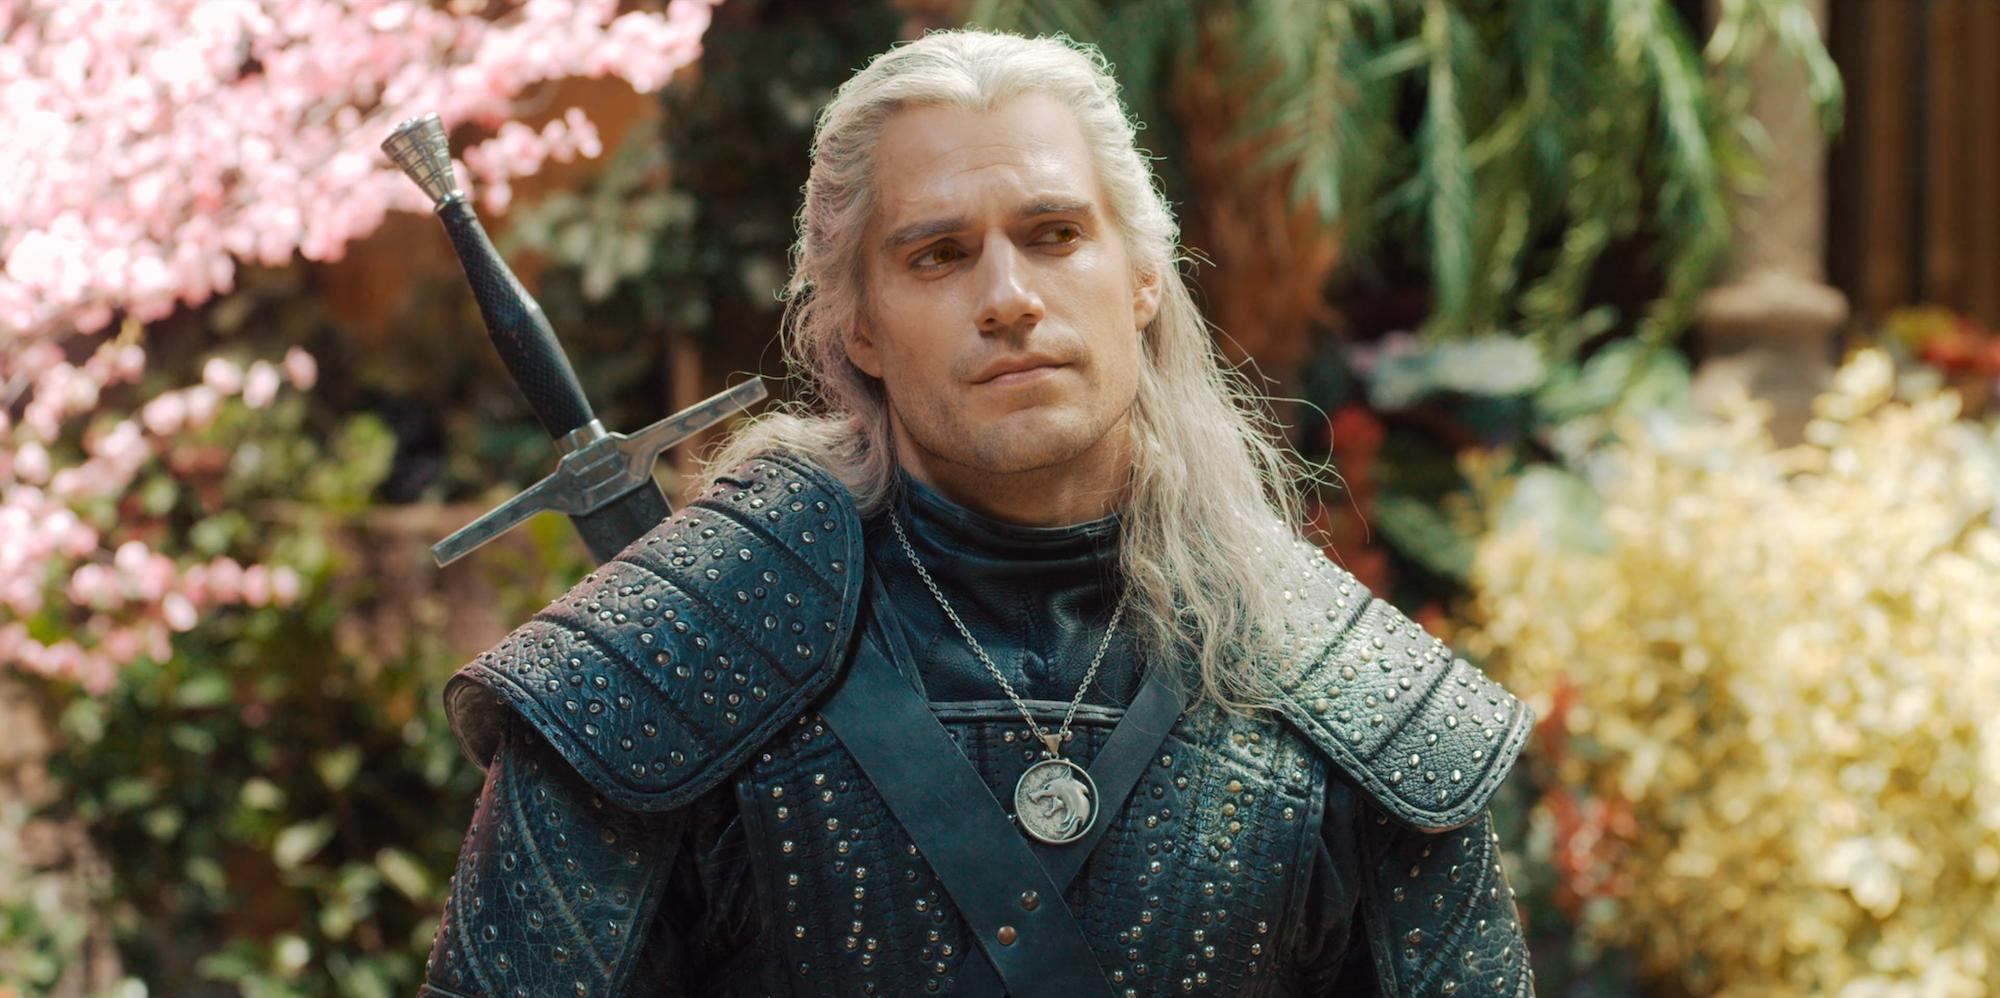 Henry Cavill in The Witcher (2019)